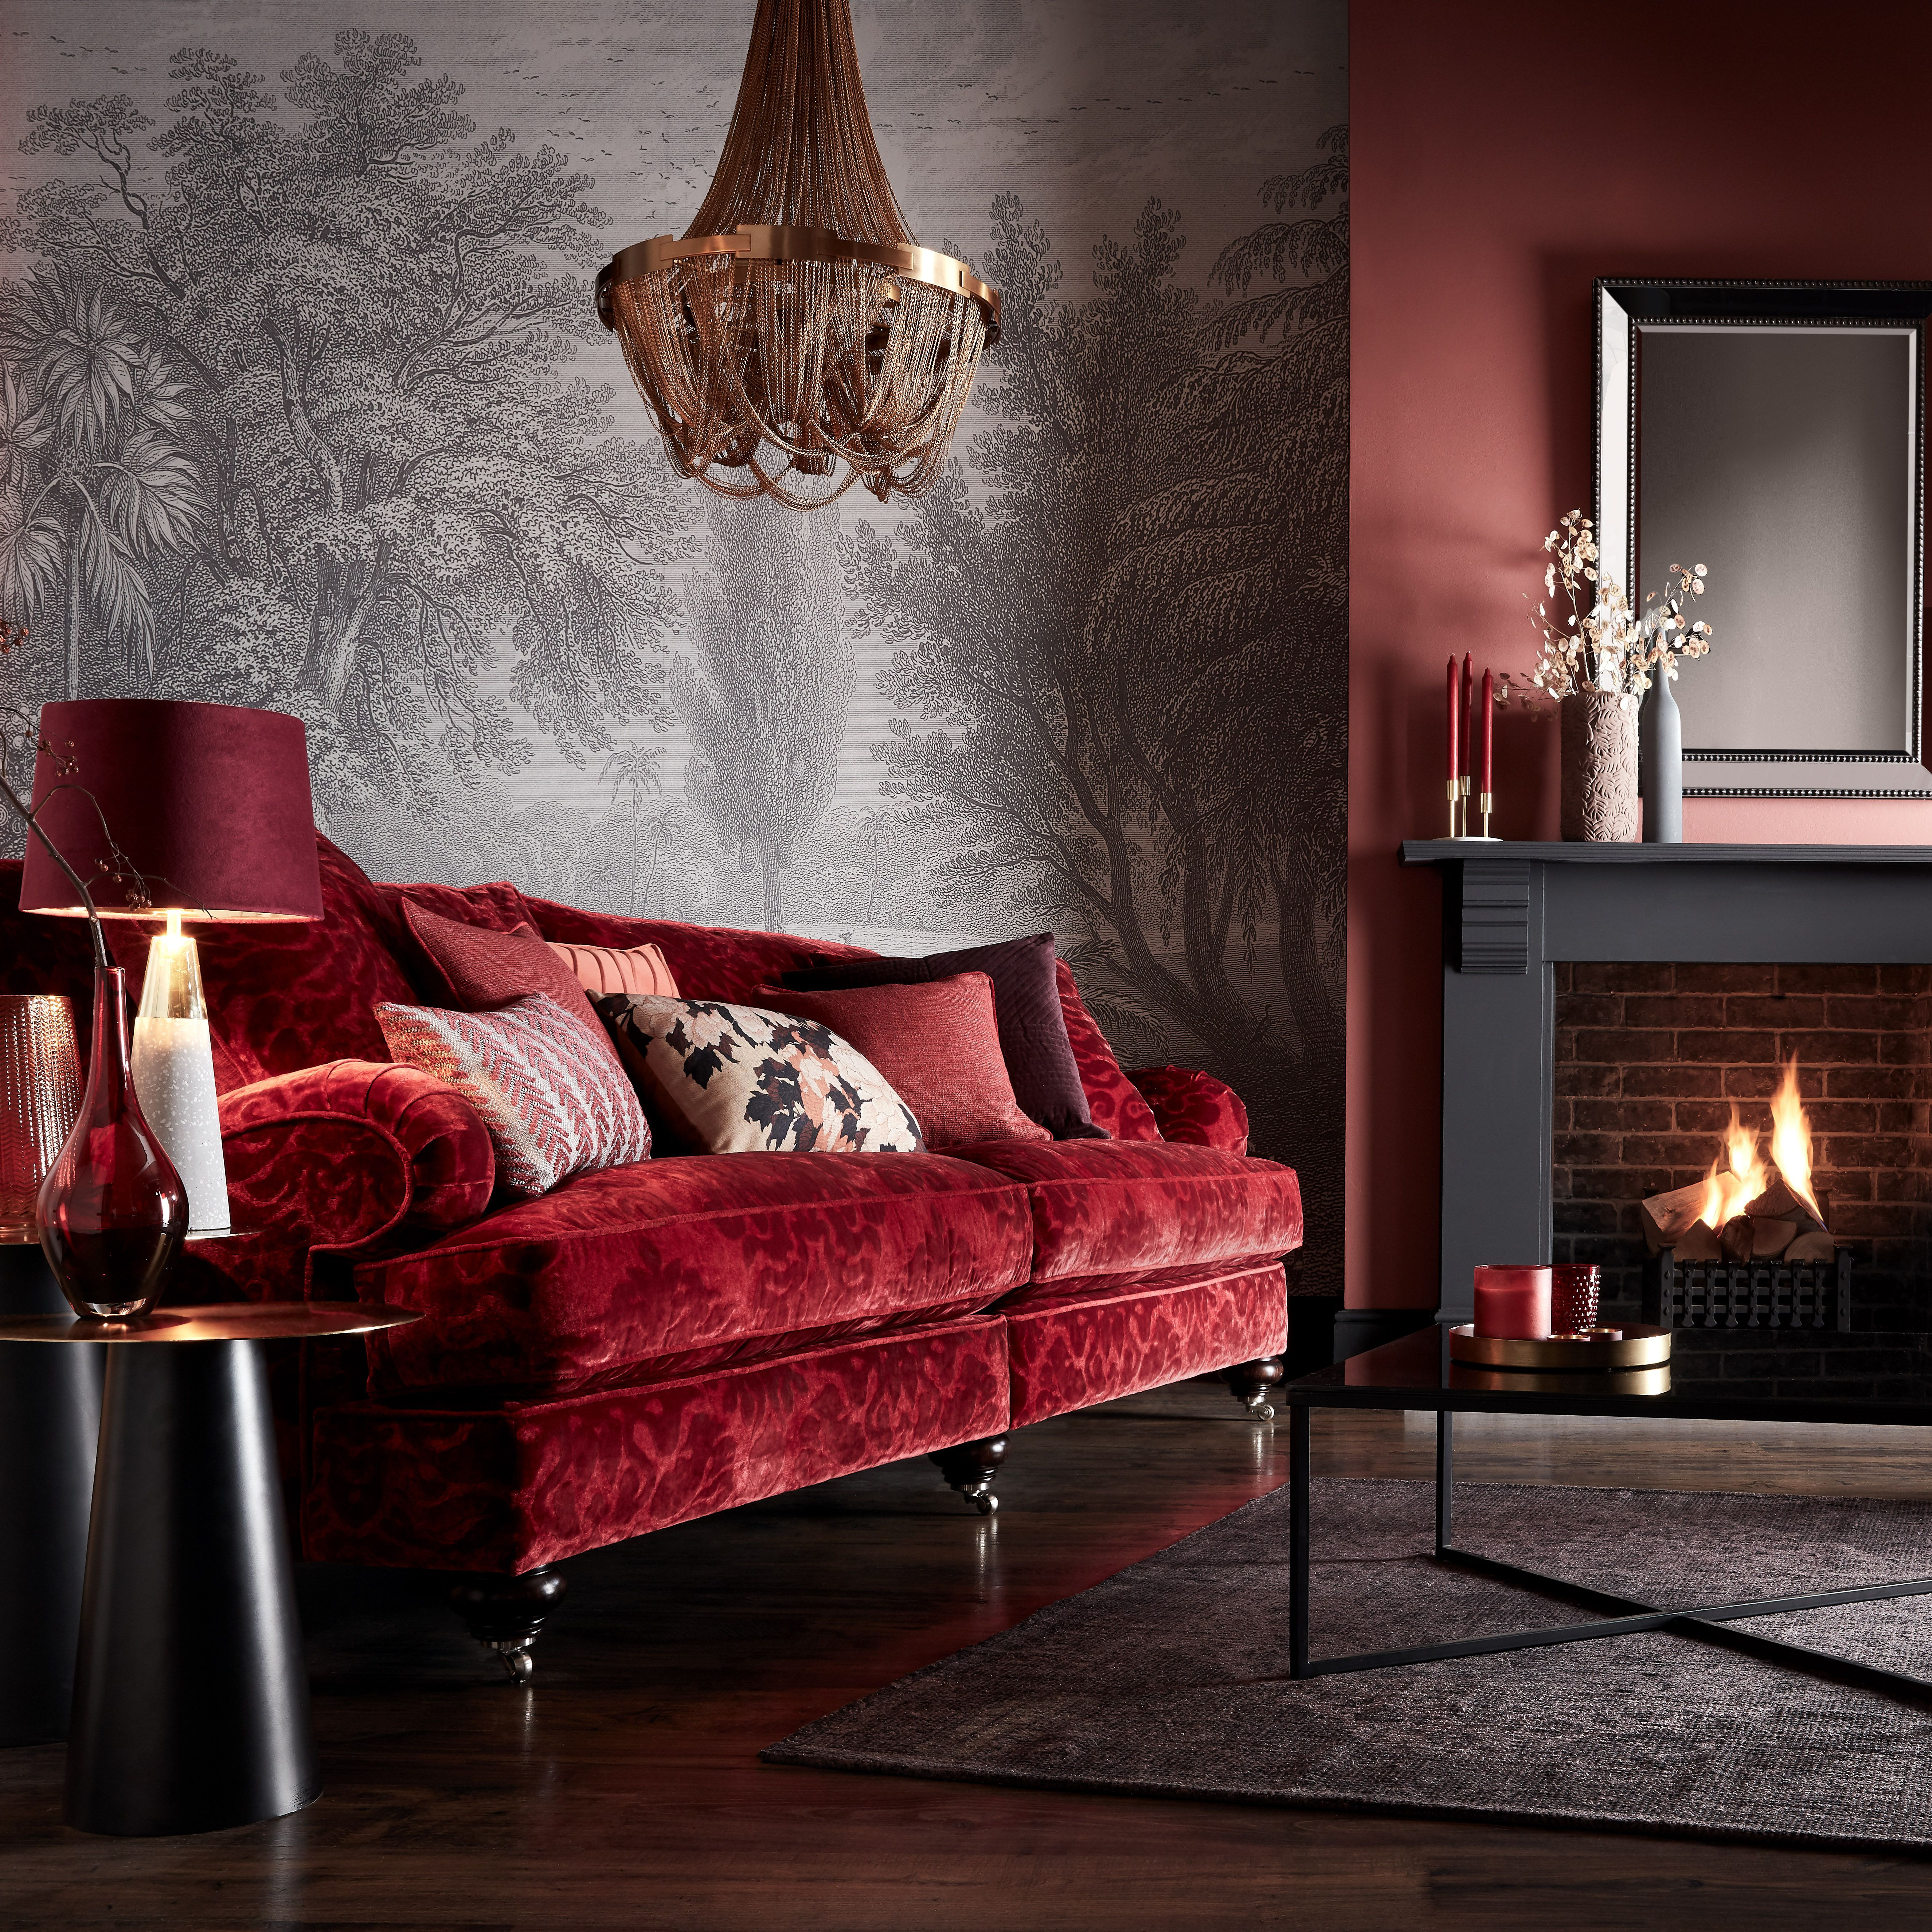 Christmas Is A Time For Relaxation Light The Fire Curl Up On A Red Velvet Sofa And Unwind In Cosy Red Sofa Living Room Red Sofa Living Red Couch Living Room